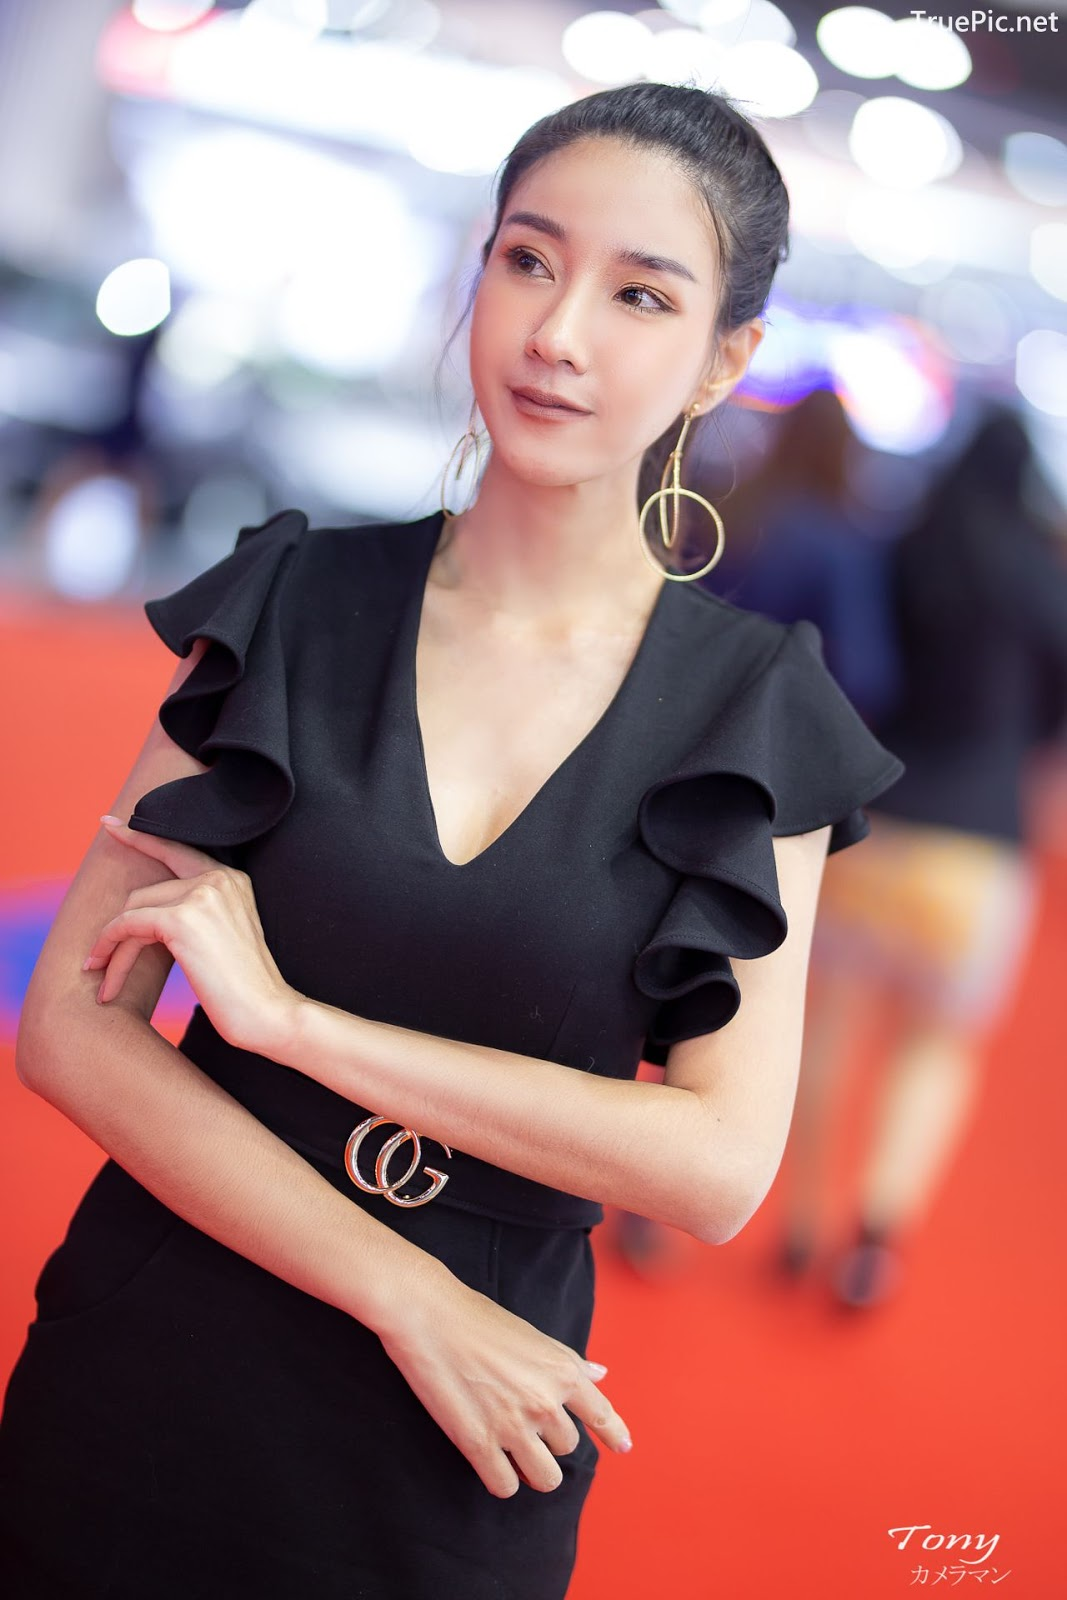 Image-Thailand-Hot-Model-Thai-Racing-Girl-At-Motor-Show-2019-TruePic.net- Picture-8